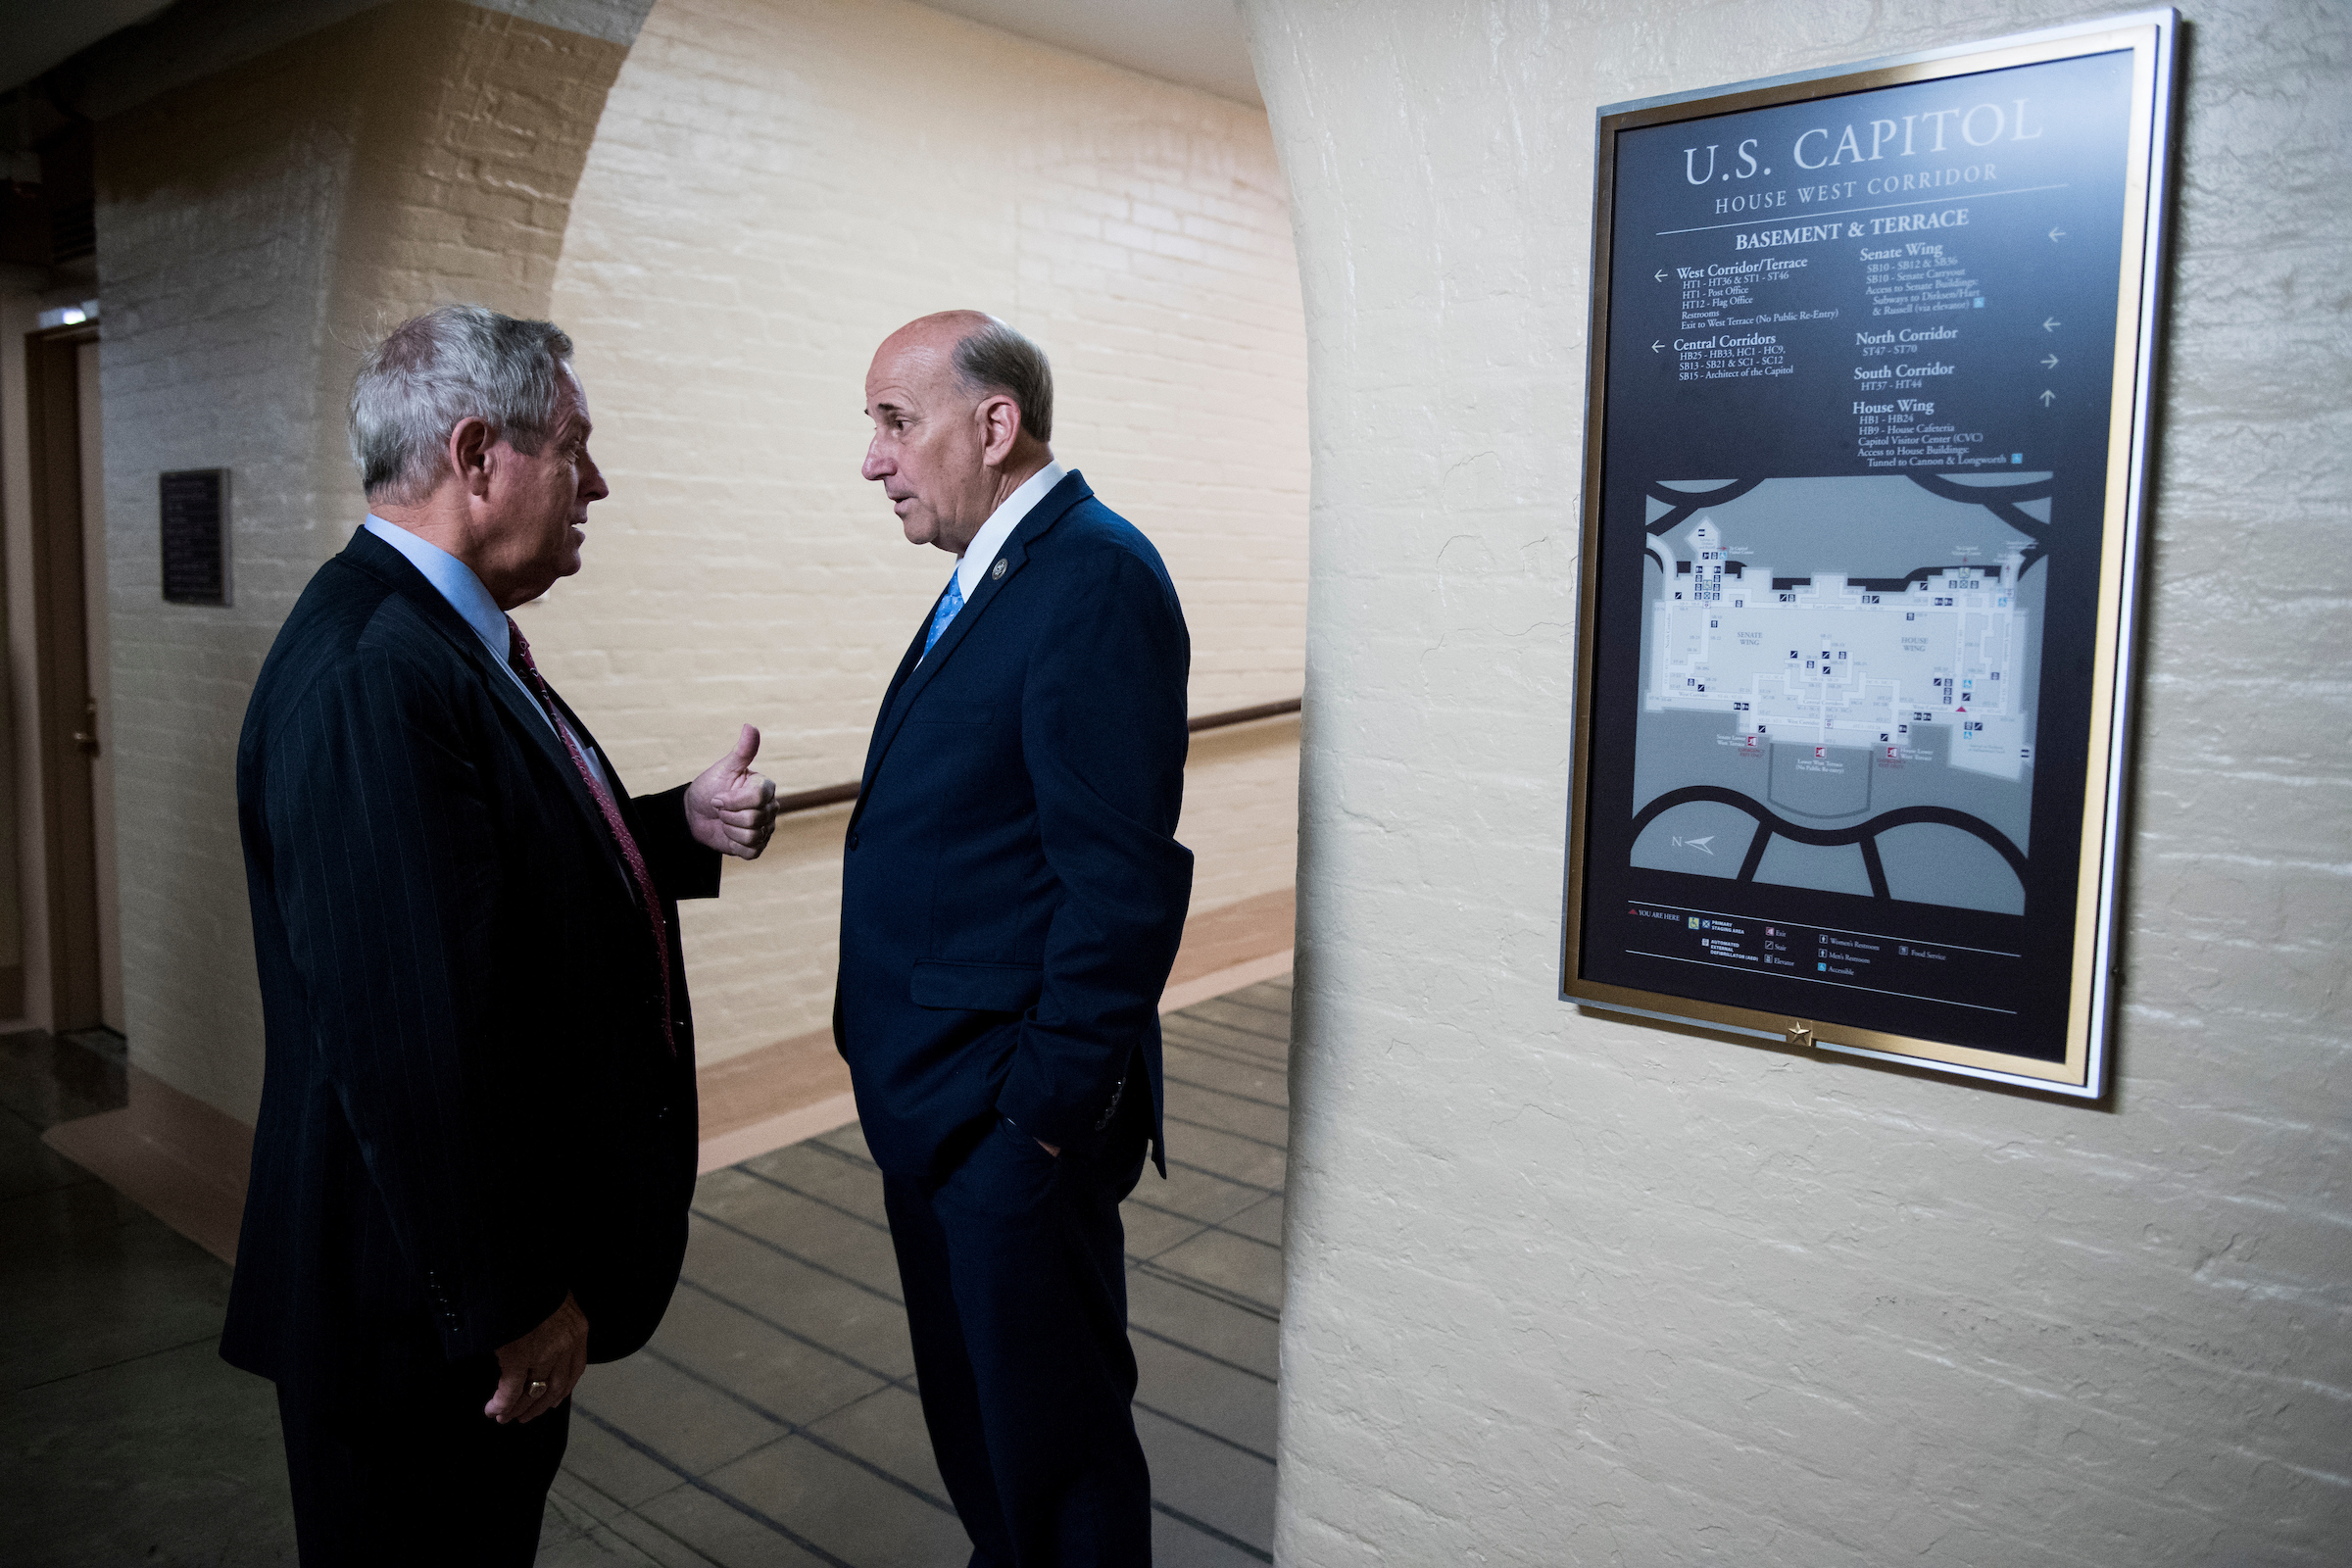 UNITED STATES - OCTOBER 24: Rep. Joe Wilson, R-S.C., left, and Rep. Louie Gohmert, R-Texas, talk as they leave the House Republican Conference meeting in the basement of the Capitol on Tuesday, oct. 24, 2017. (Photo By Bill Clark/CQ Roll Call)